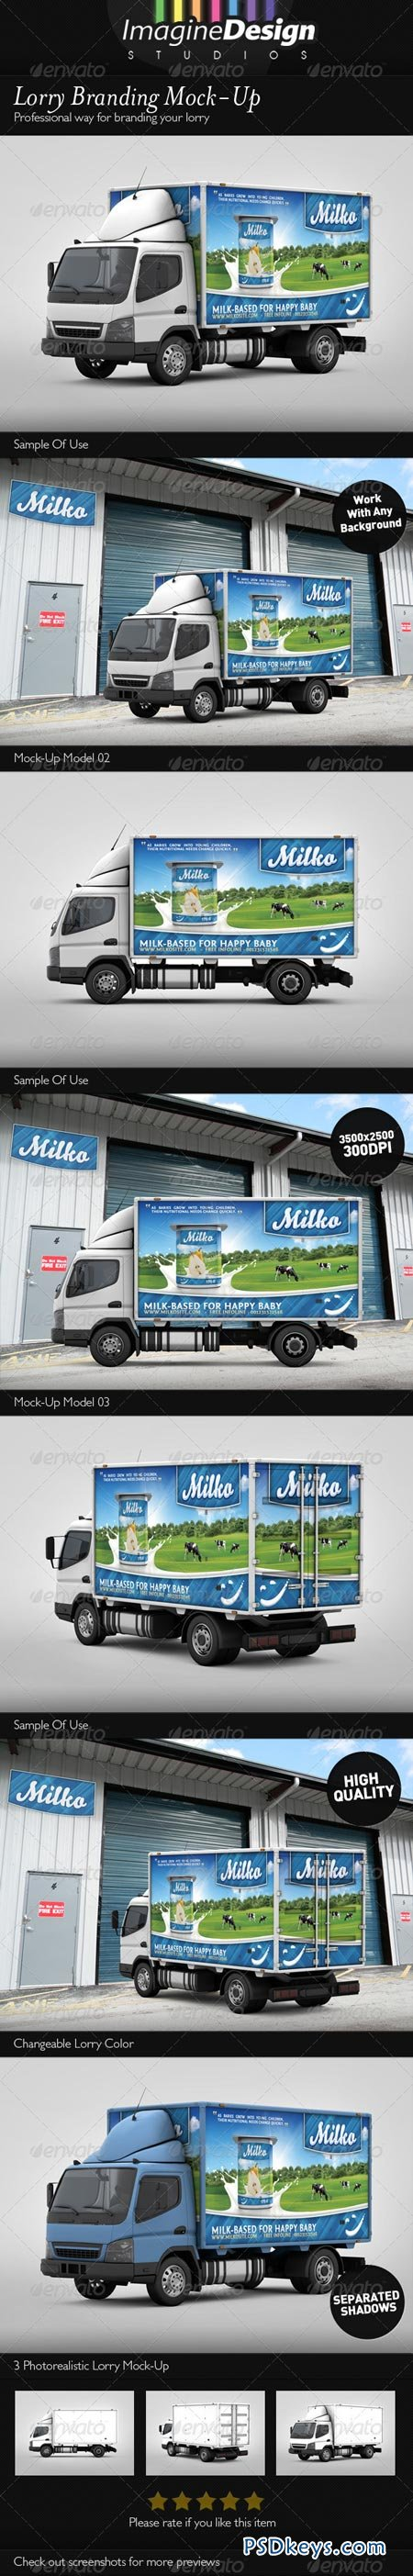 Lorry Branding Mock-Up 3315350